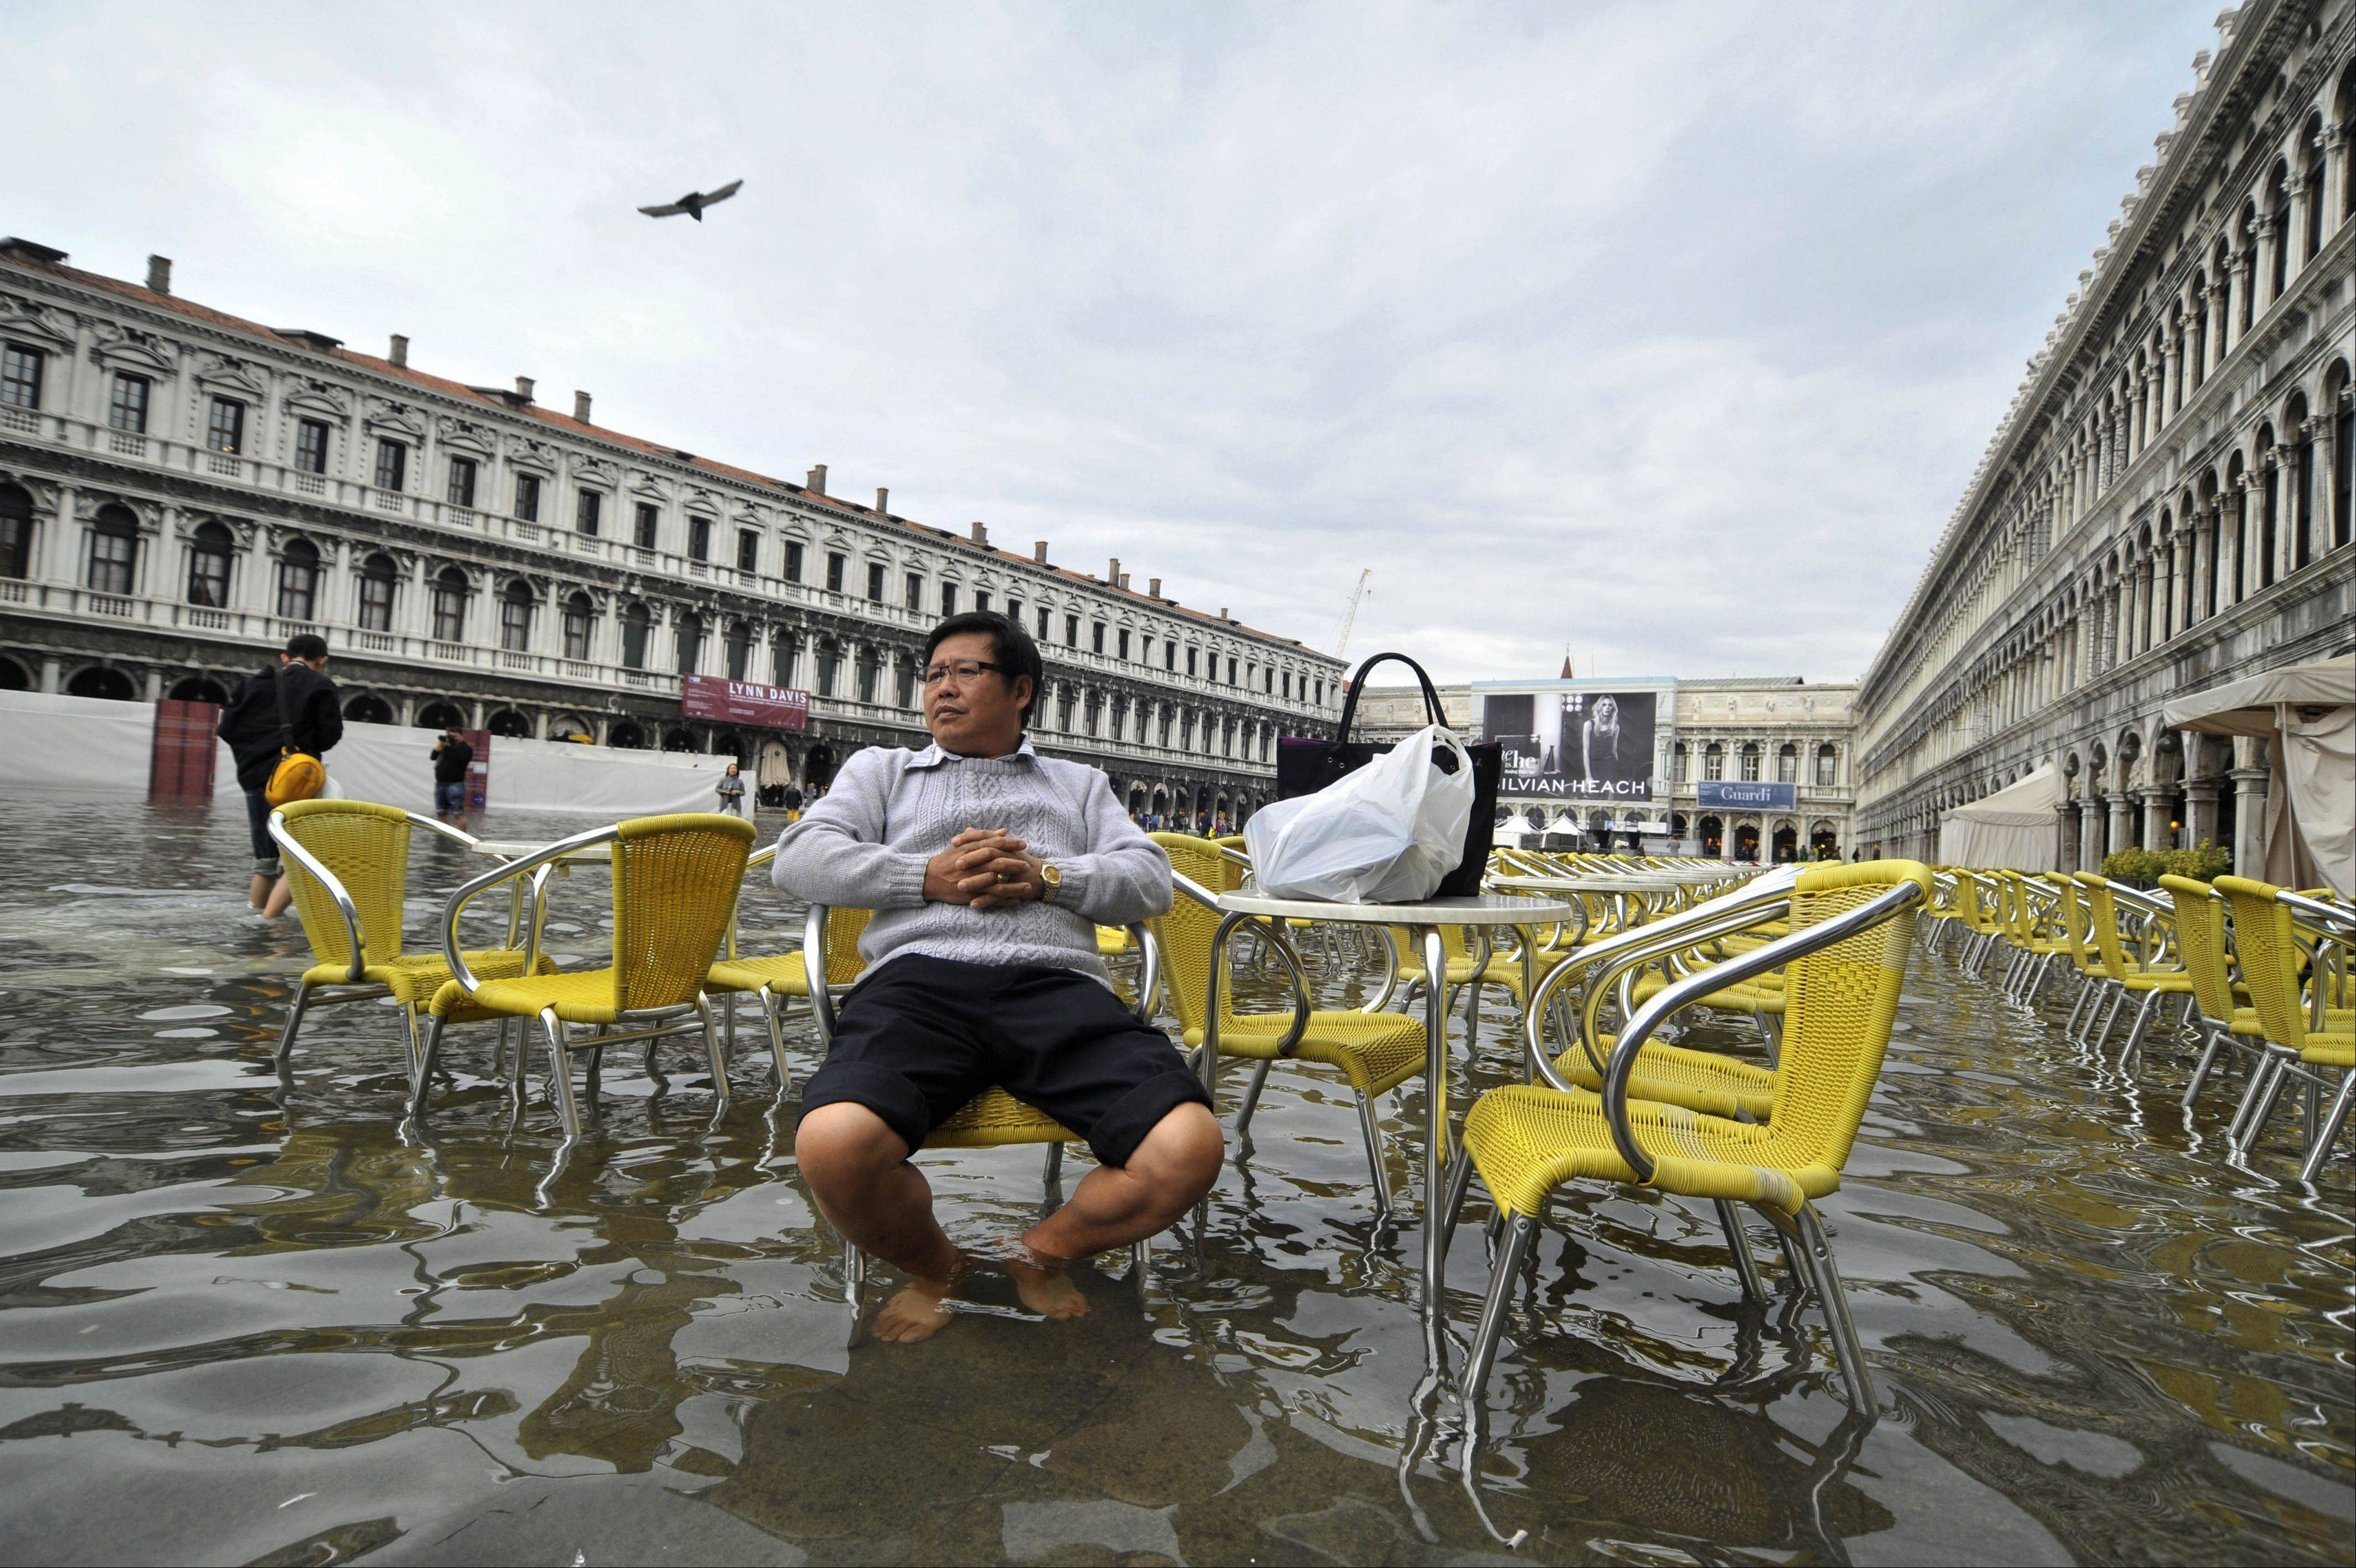 A tourist sits outside a cafe in a flooded St. Mark square as high tides reached three feet above sea level, partly flooding the city of Venice, Italy, Oct. 15, 2012. The Lagoon City, a system of islands built into a river delta, is extremely vulnerable to rising sea levels. At the same time it is experiencing a lowering of the sea floor. The constant flooding puts the city�s considerable architectural treasures at risk.